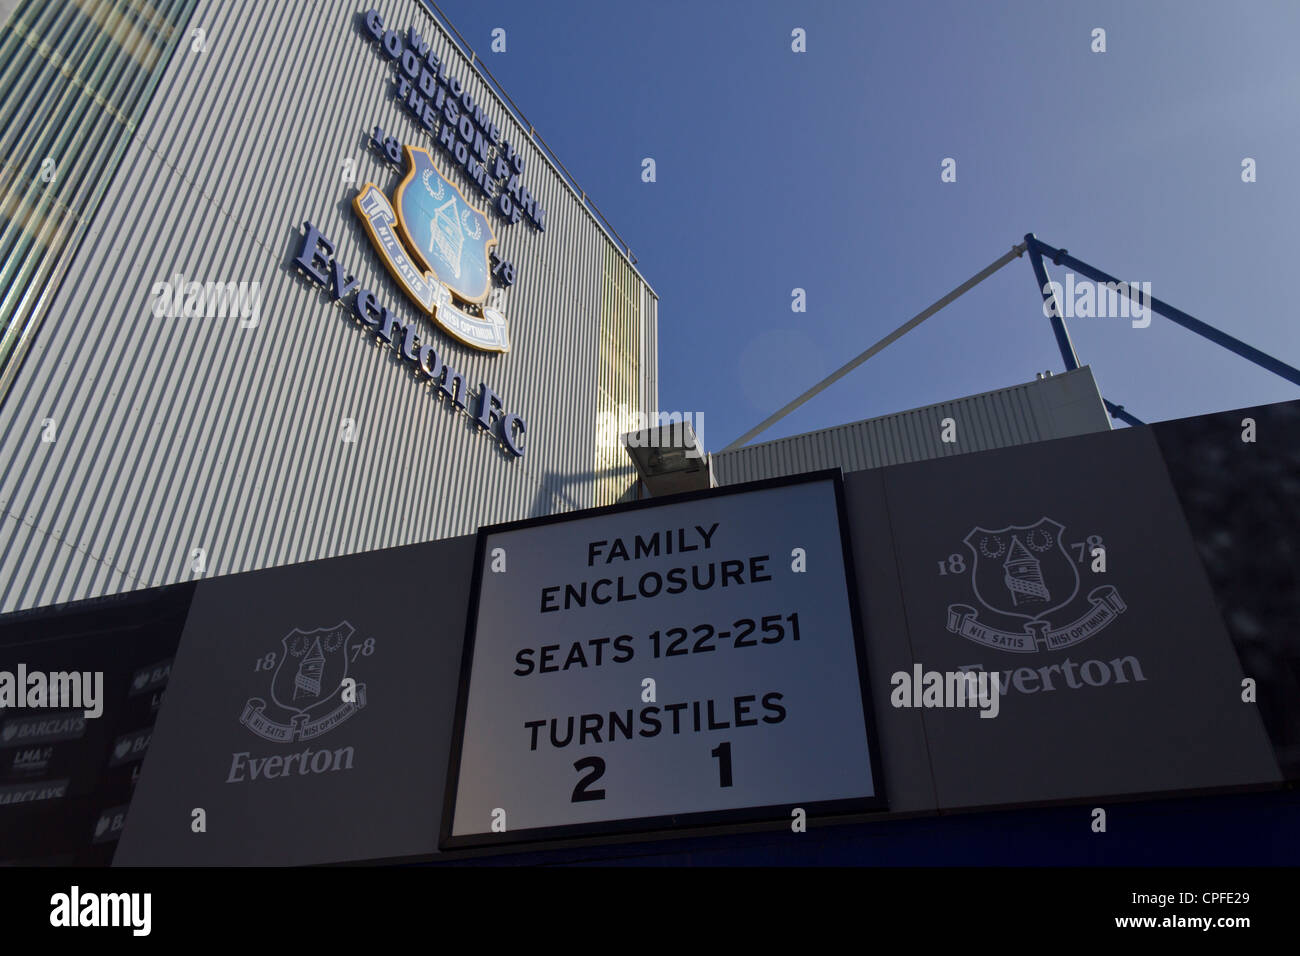 Exterior of Goodison Park, Home of Everton Football Club Stock Photo